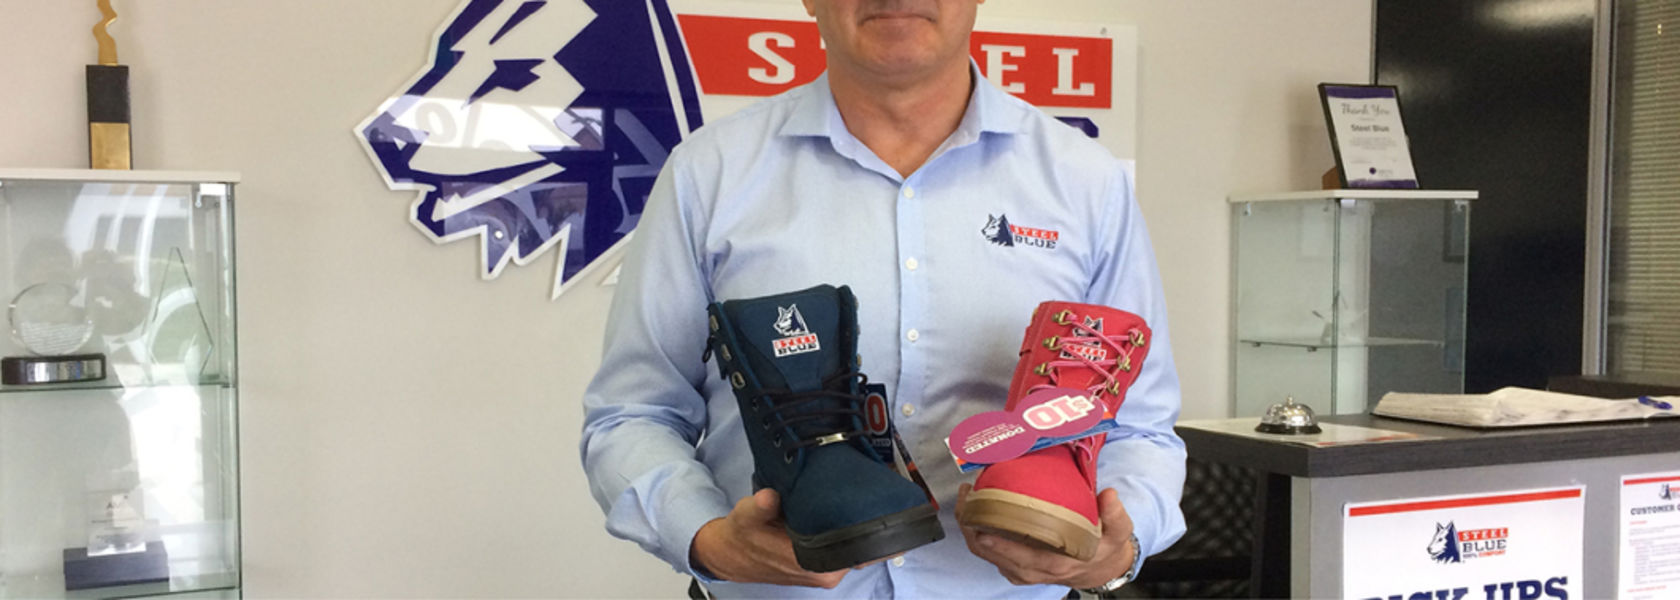 Steel Blue to release new oil and gas safety wear